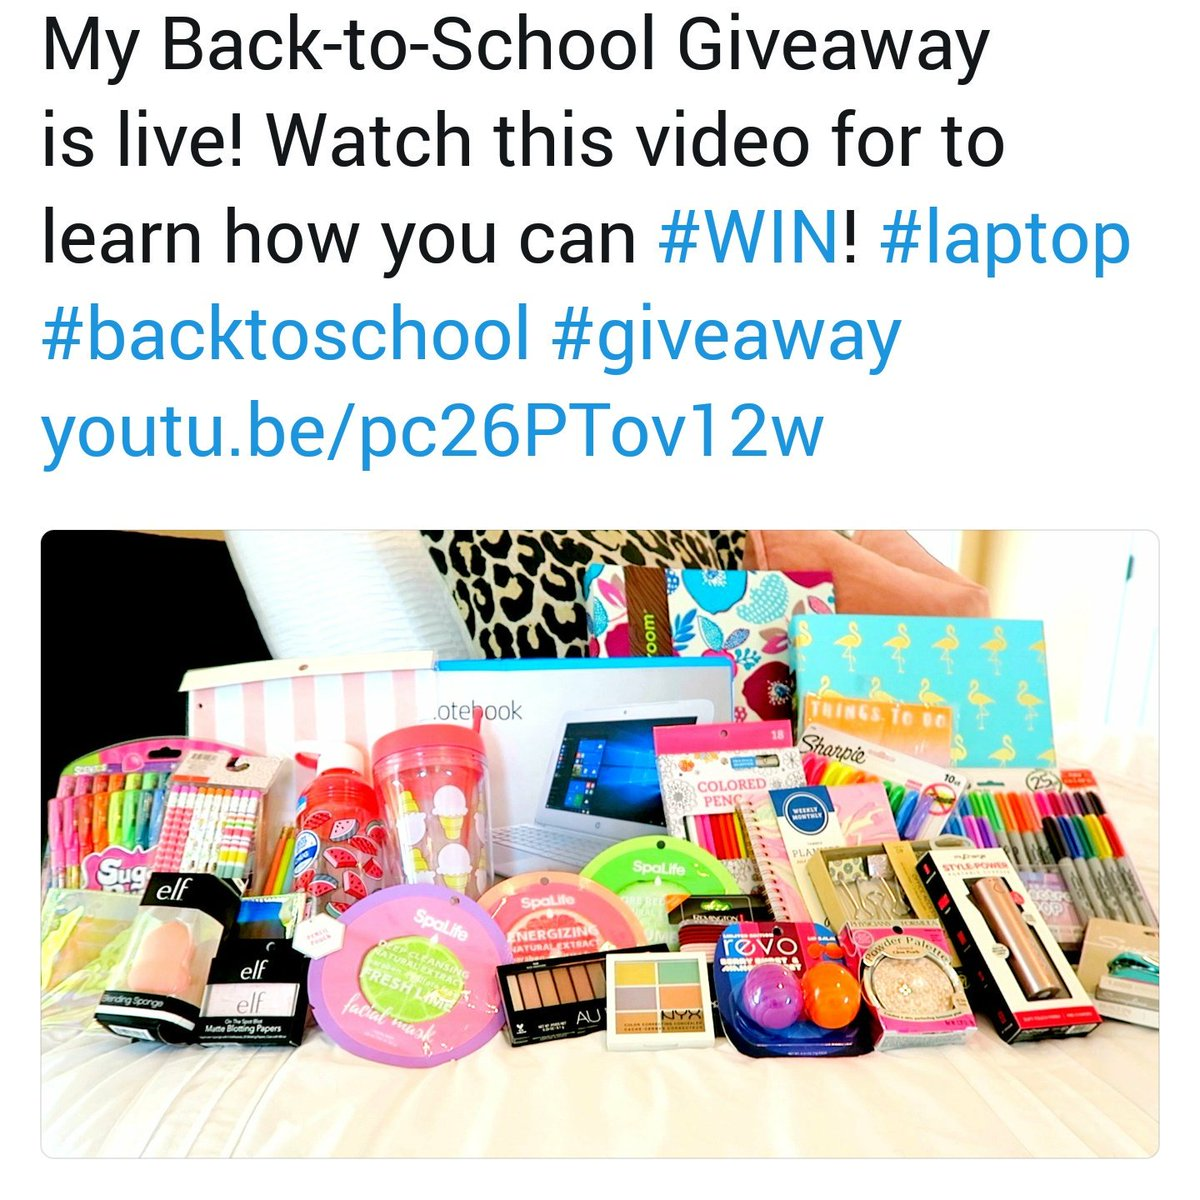 This is my retweet sorry i dont know how to work twitter  #WIN #Laptop #backtoschool  #giveaway  http:// youtu.be/pc26PTov12w  &nbsp;  <br>http://pic.twitter.com/7LMyqnrI1a